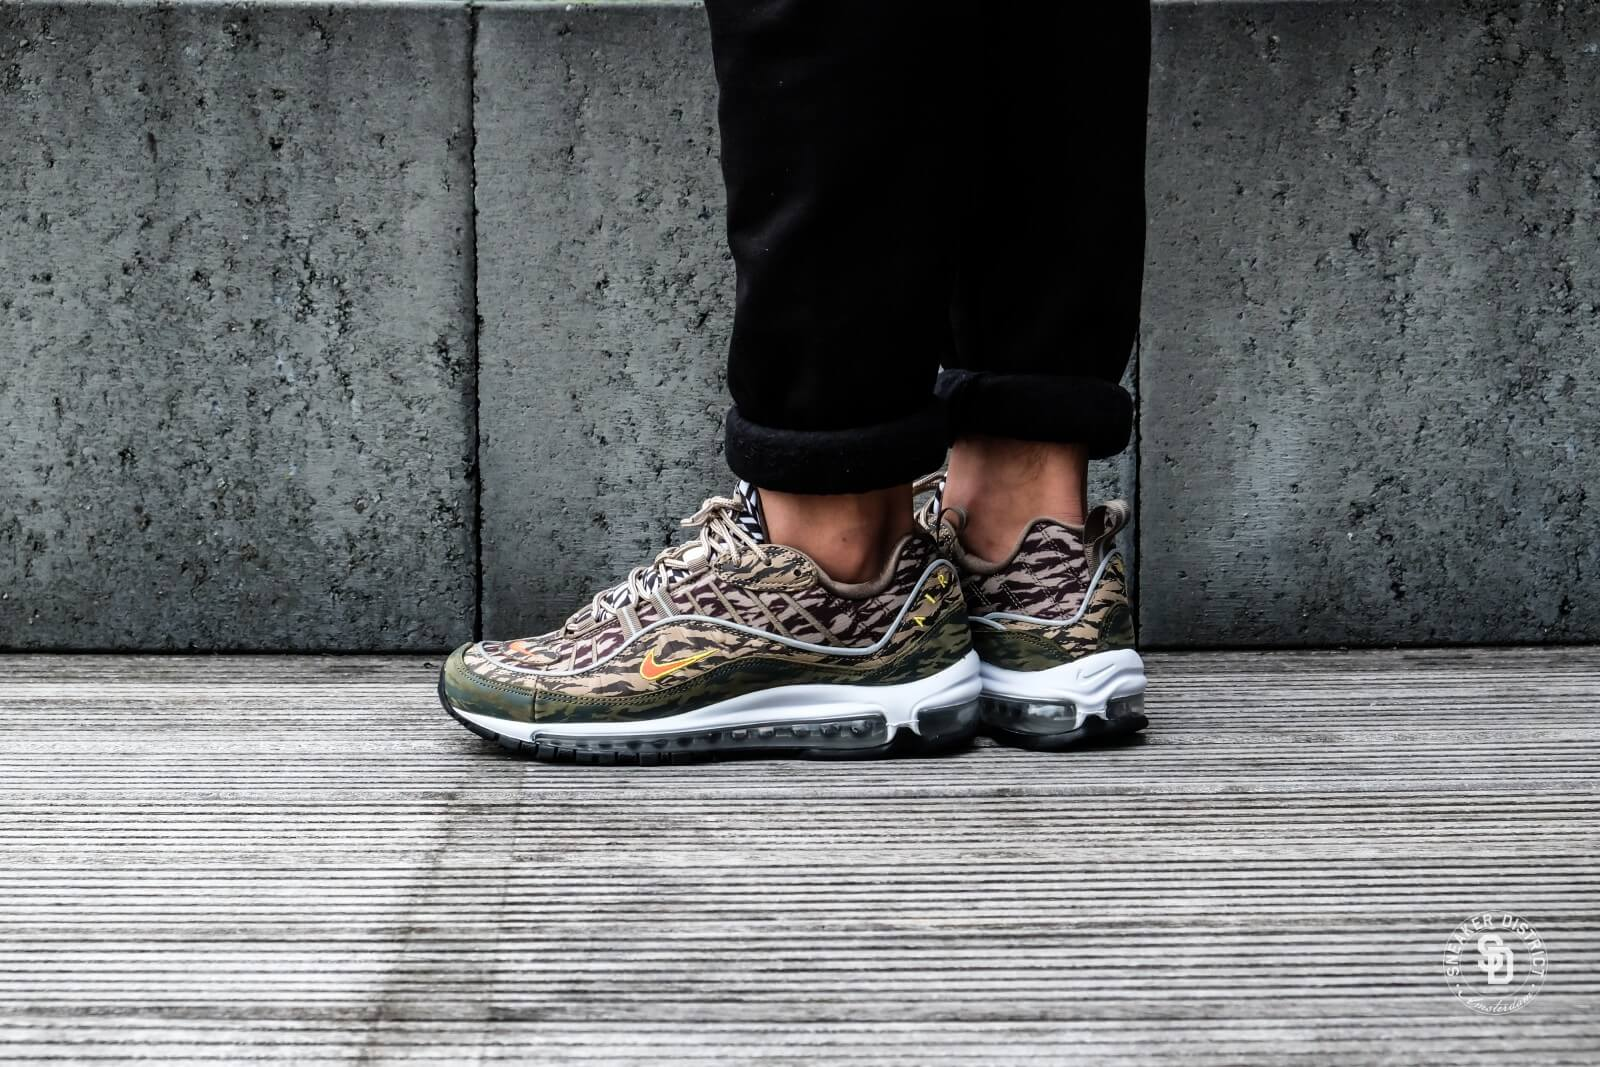 Nike Air Max 98 AOP KhakiTeam Orange Medium Olive AQ4130 200